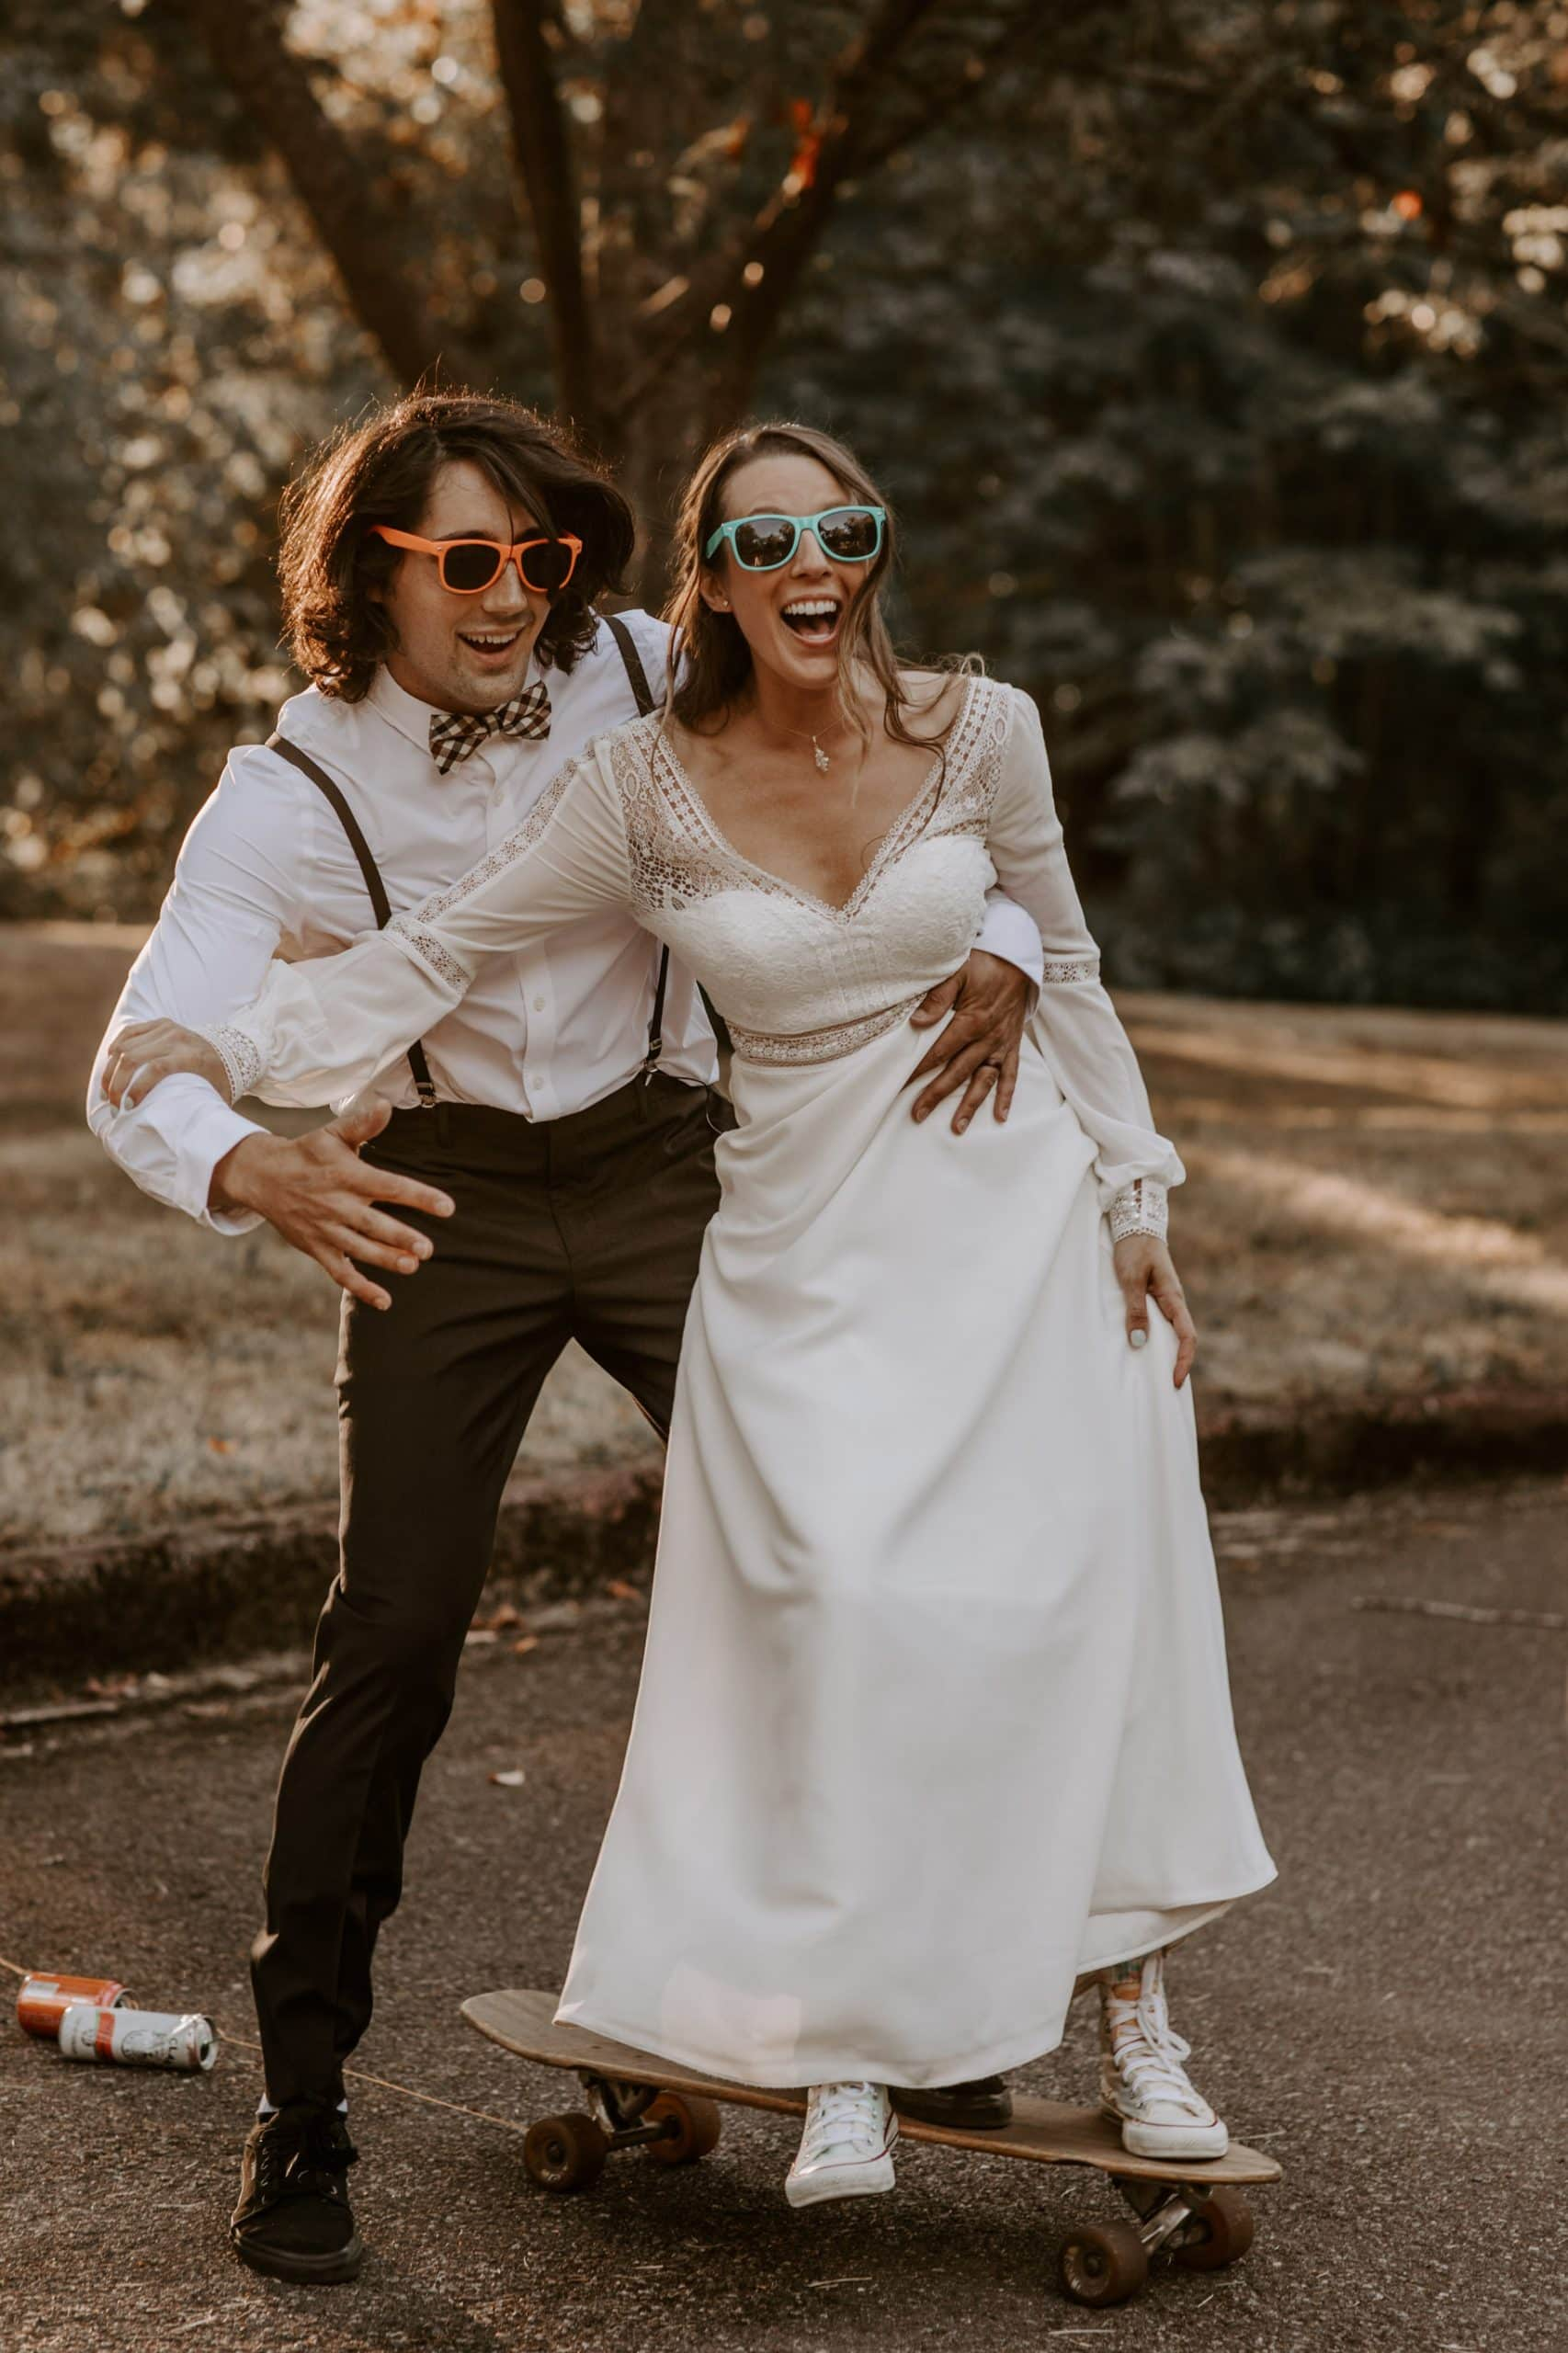 Bride and groom wearing colorful glasses and riding a skateboard after the wedding ceremony in Seward park in Seattle